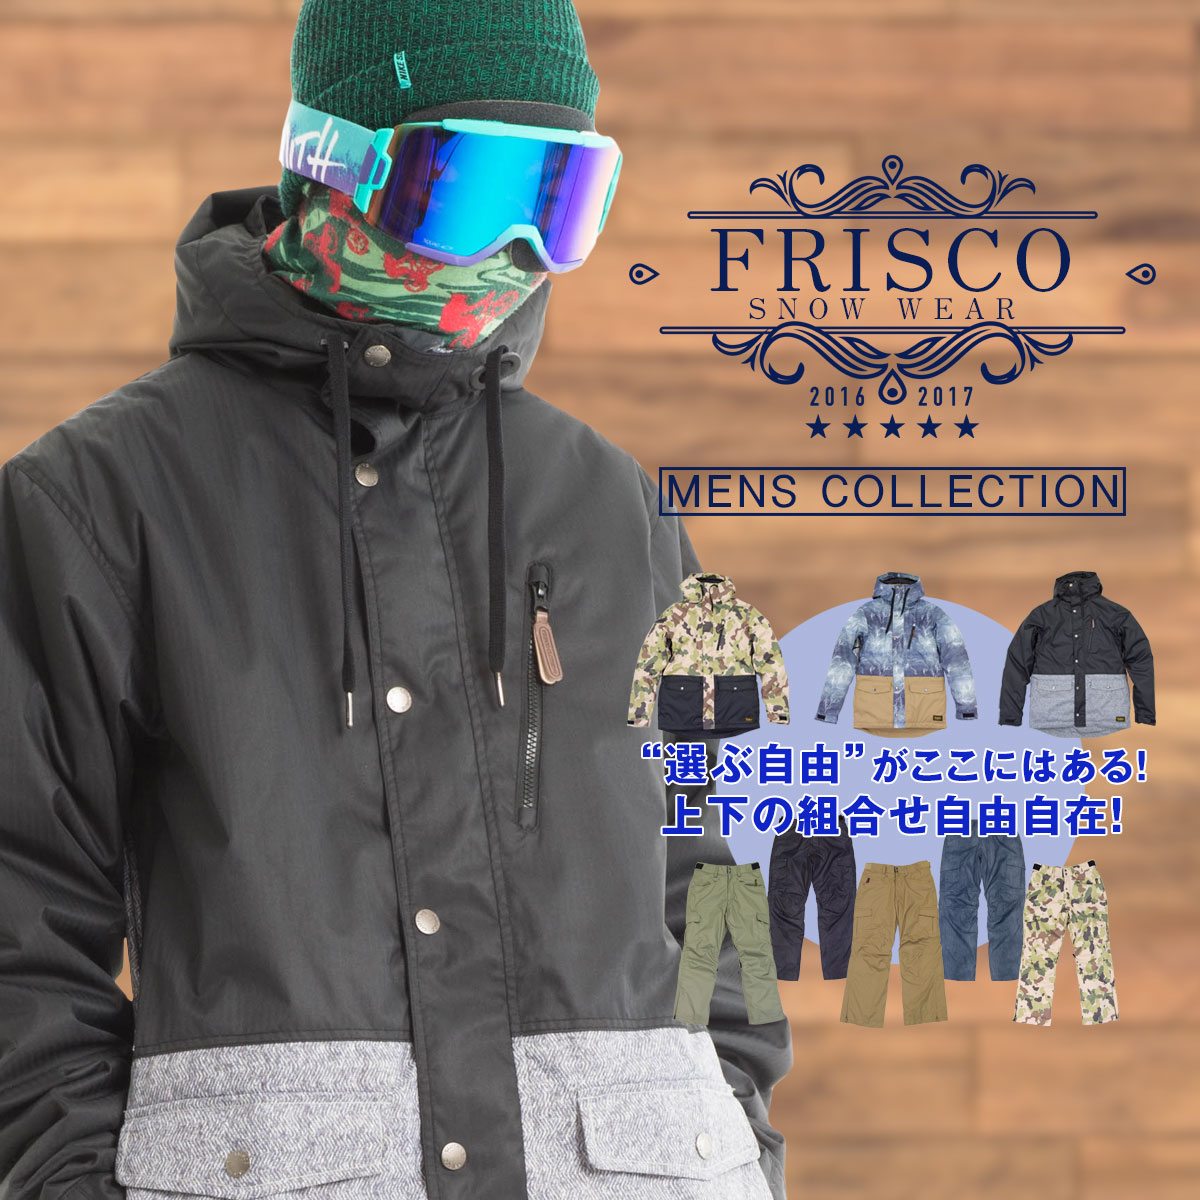 Men's snowboard were upper and lower set Silicon Accessory jacket pants  down set snowboarding clothing snowboard clothing wear snow were snowboard  ski